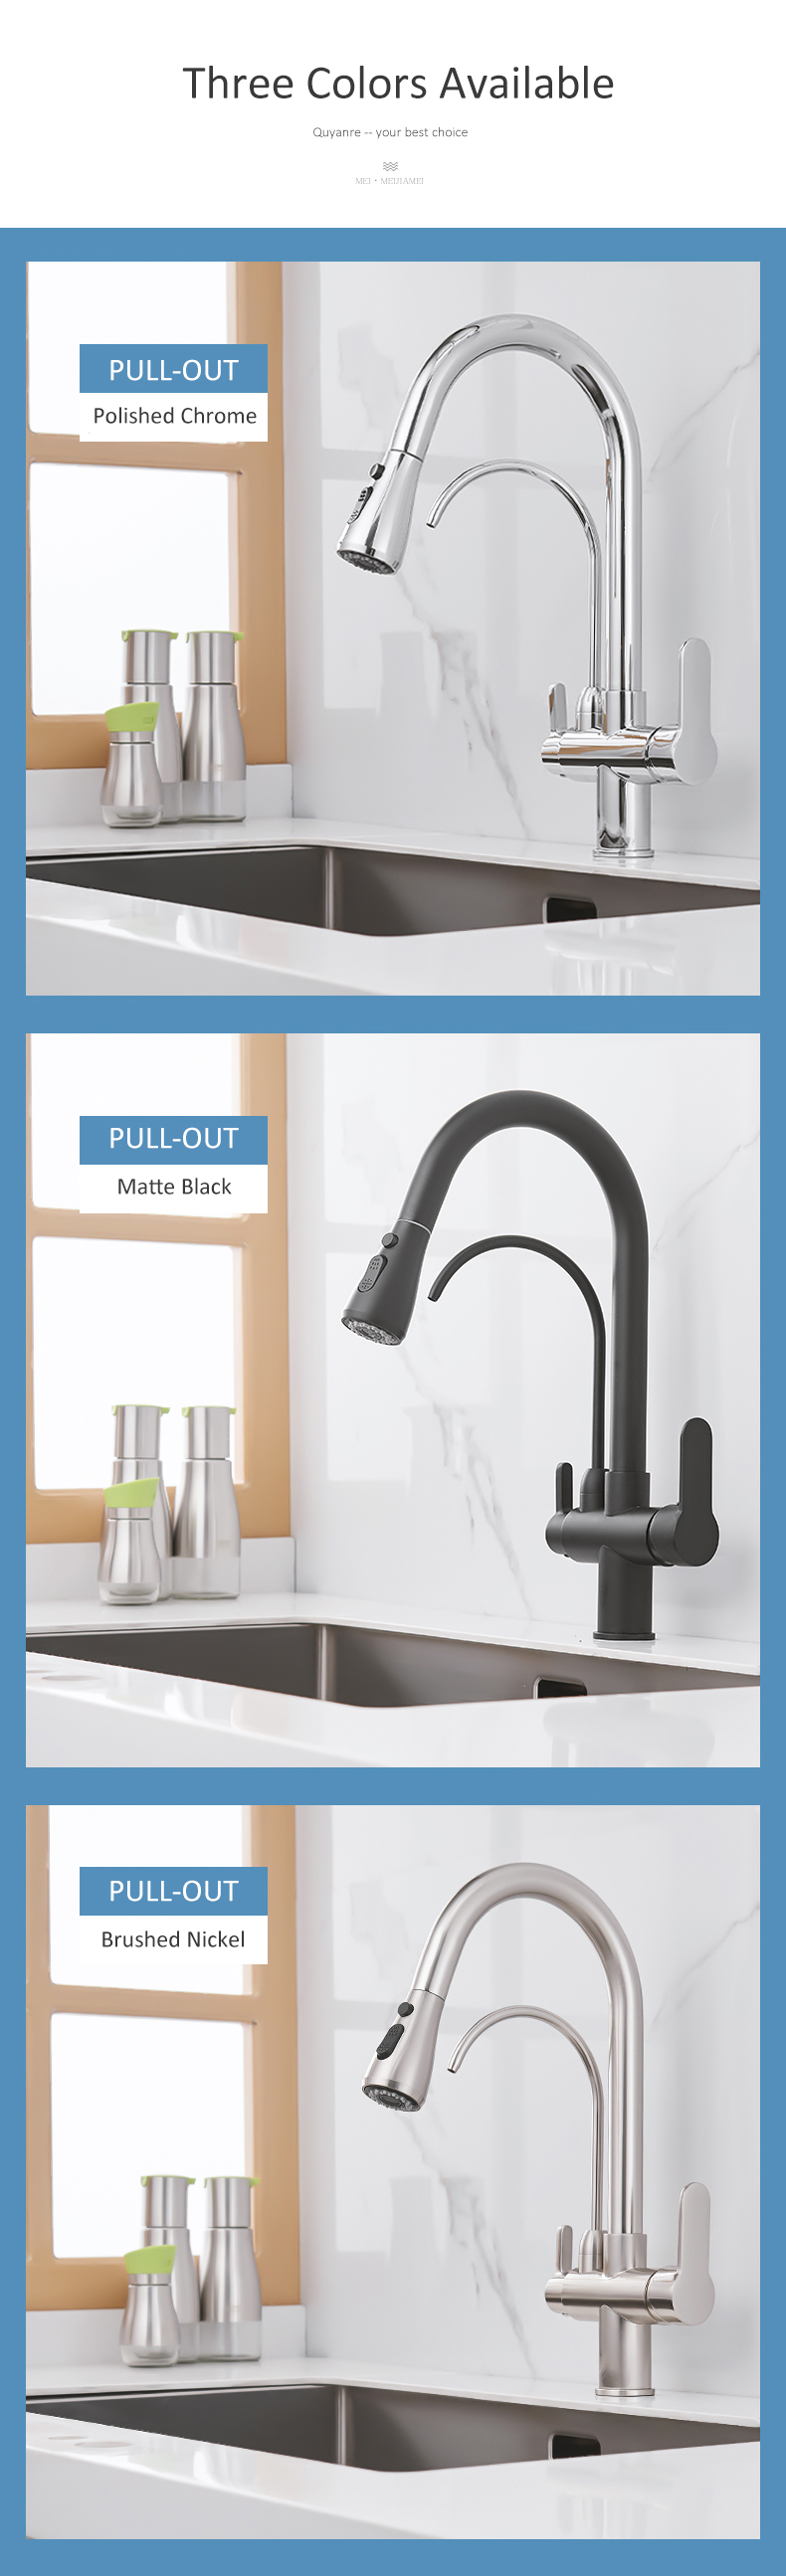 Quyanre Matte Black Filtered Crane For Kitchen Pull Out Spray 360 Rotation Water Filter Tap Three Ways Sink Mixer Kitchen Faucet